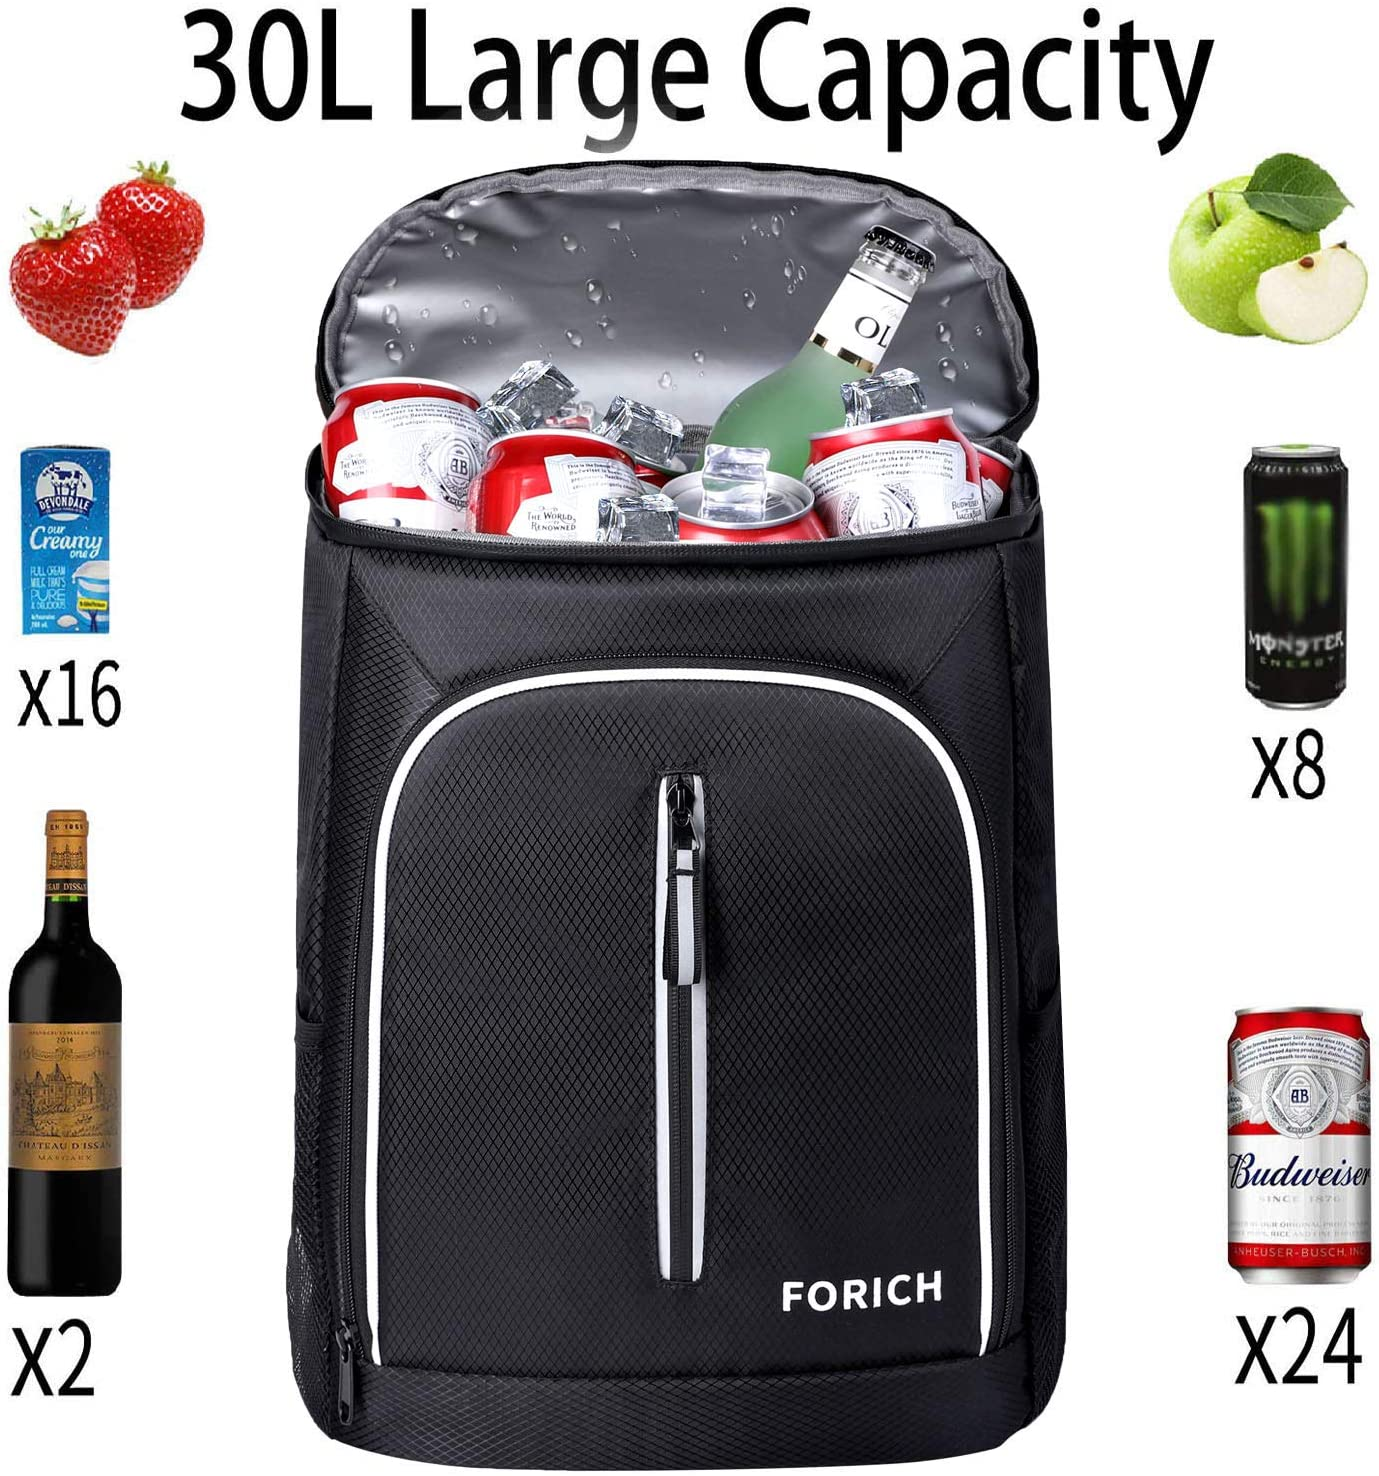 Watermelon Red FORICH Cooler Backpack Soft Backpack Cooler Bag Leak Proof Insulated Cooler Backpacks to Beach Camping Hiking Picnic Work Lunch Travel for Men Women